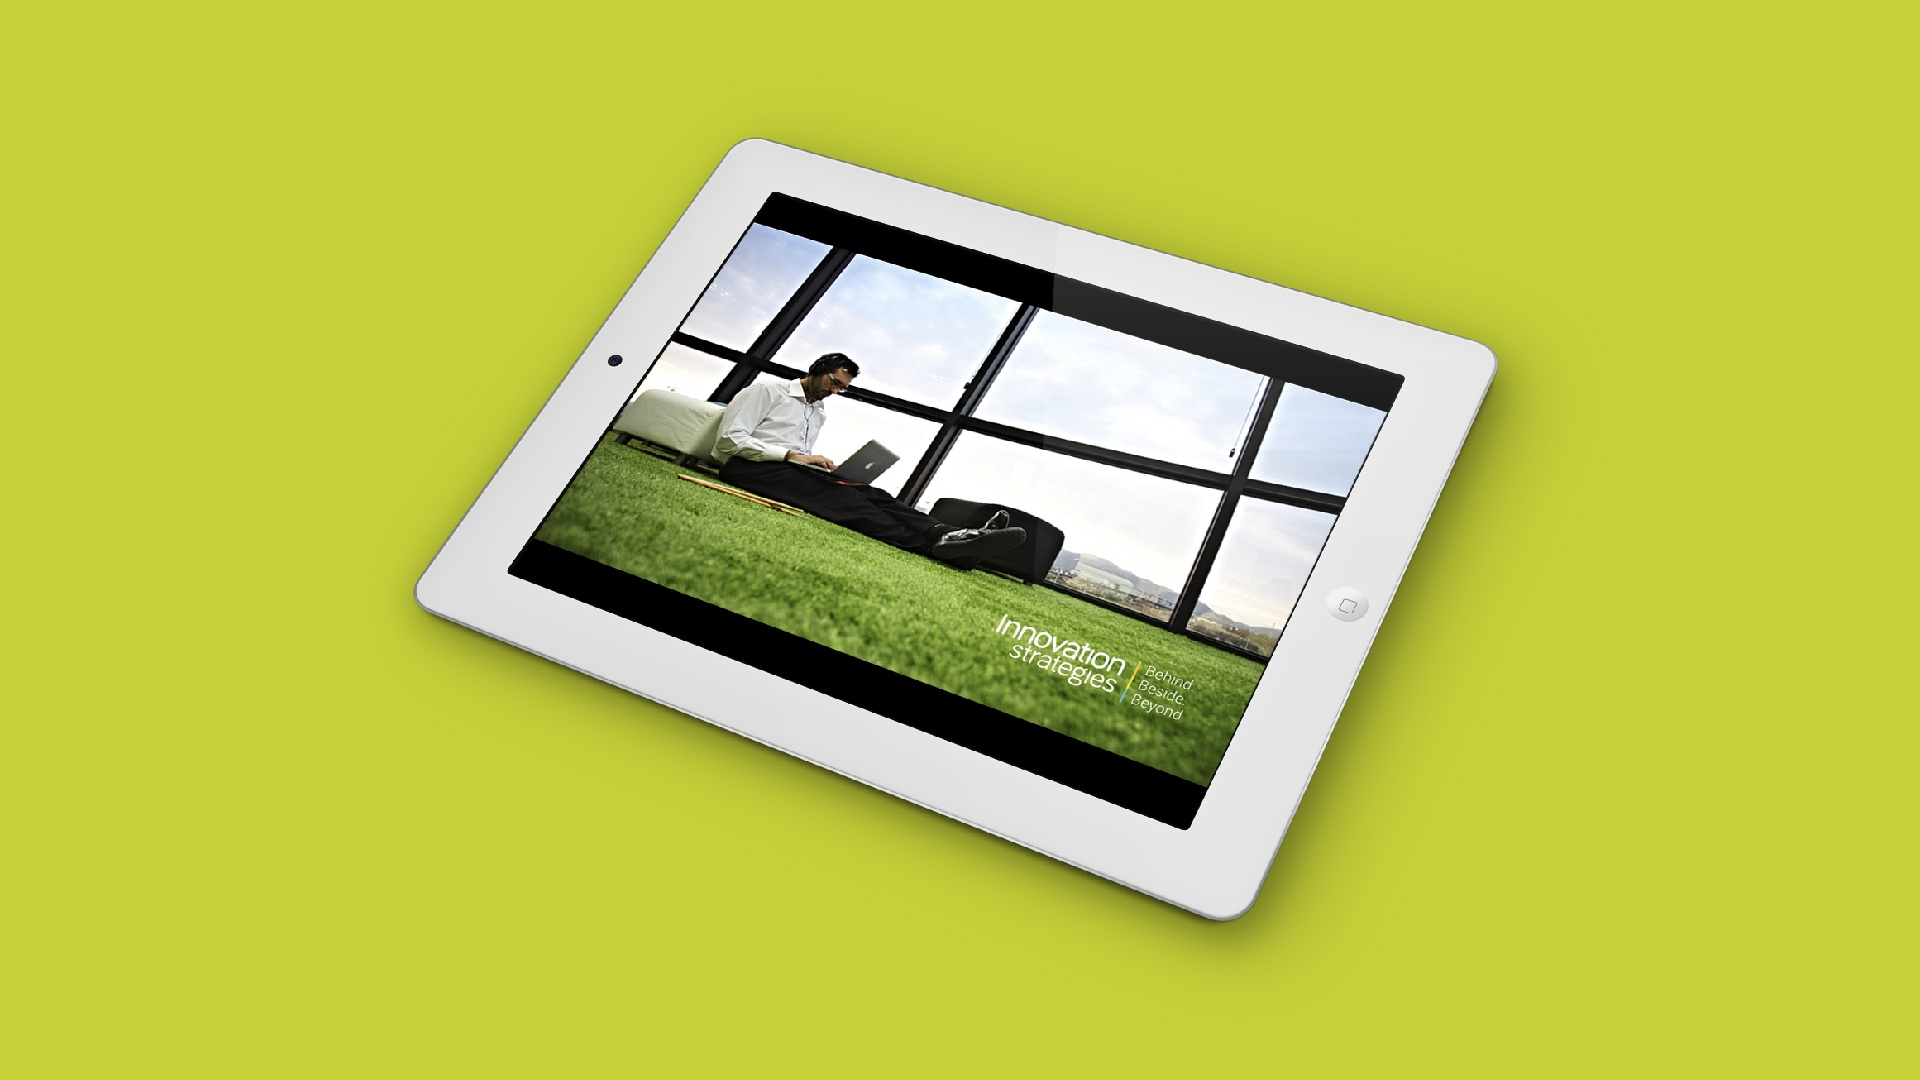 Innovation startegies - Caso de éxito de marketing